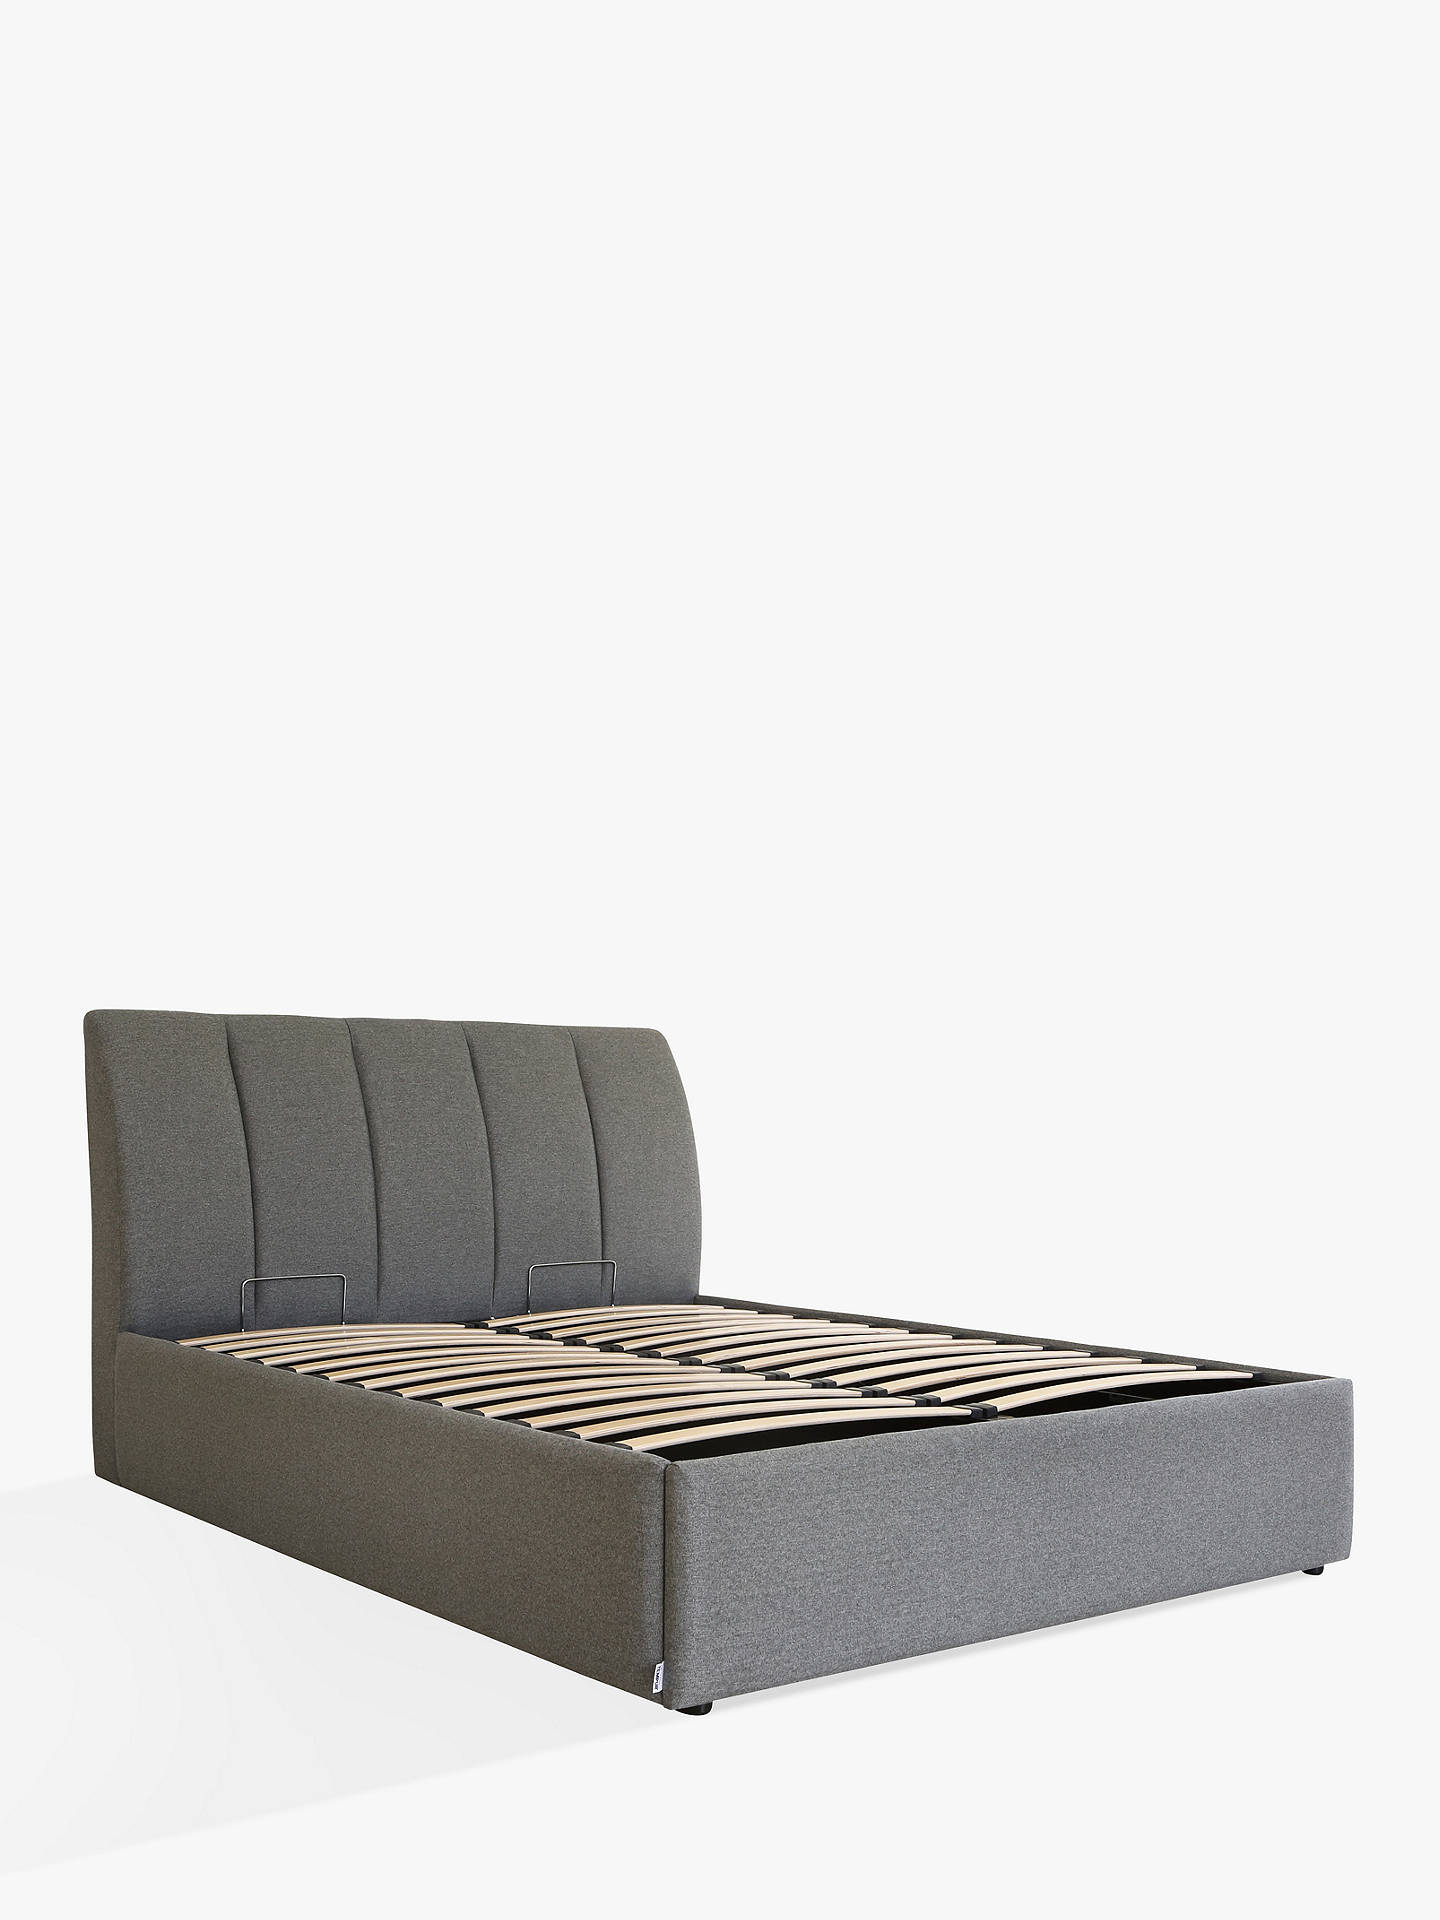 Terrific Tempur Bayonne Ottoman Divan Storage Bed Double Creativecarmelina Interior Chair Design Creativecarmelinacom